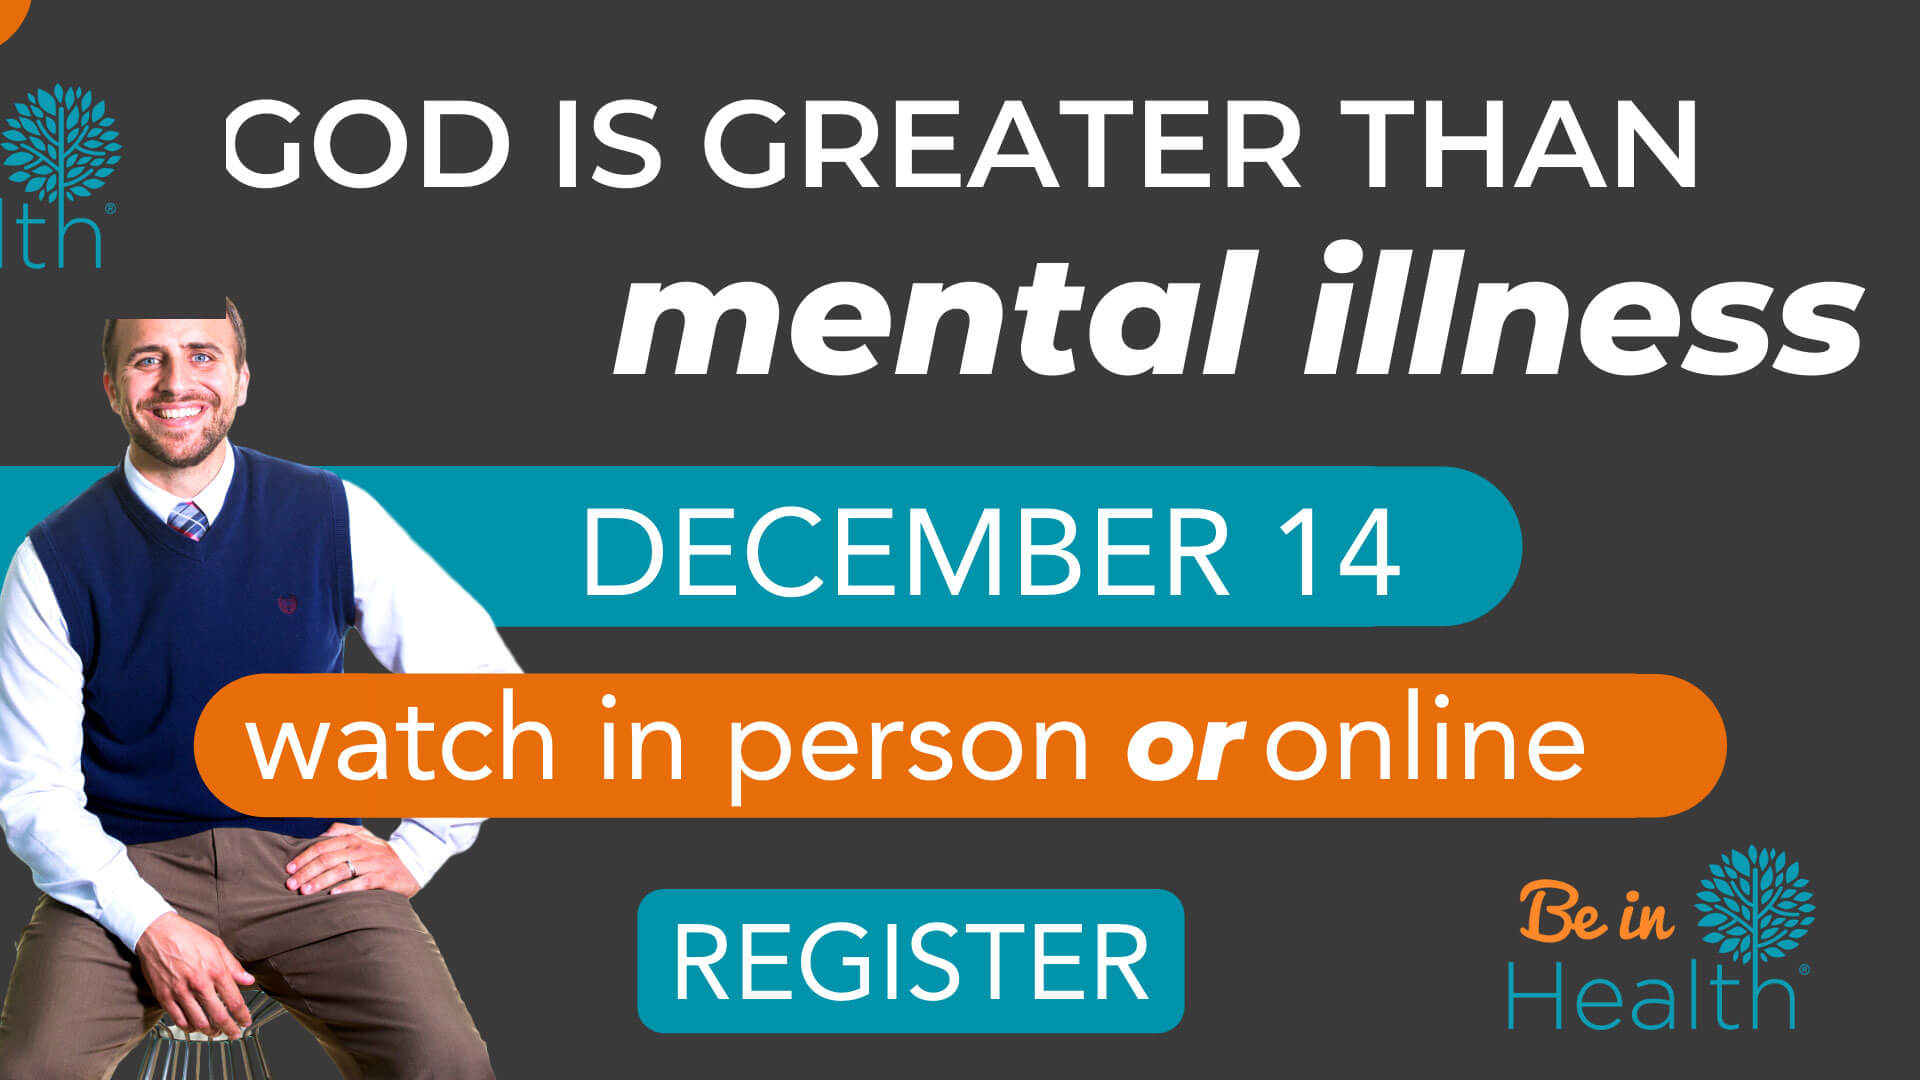 God is Greater than Mental Illness